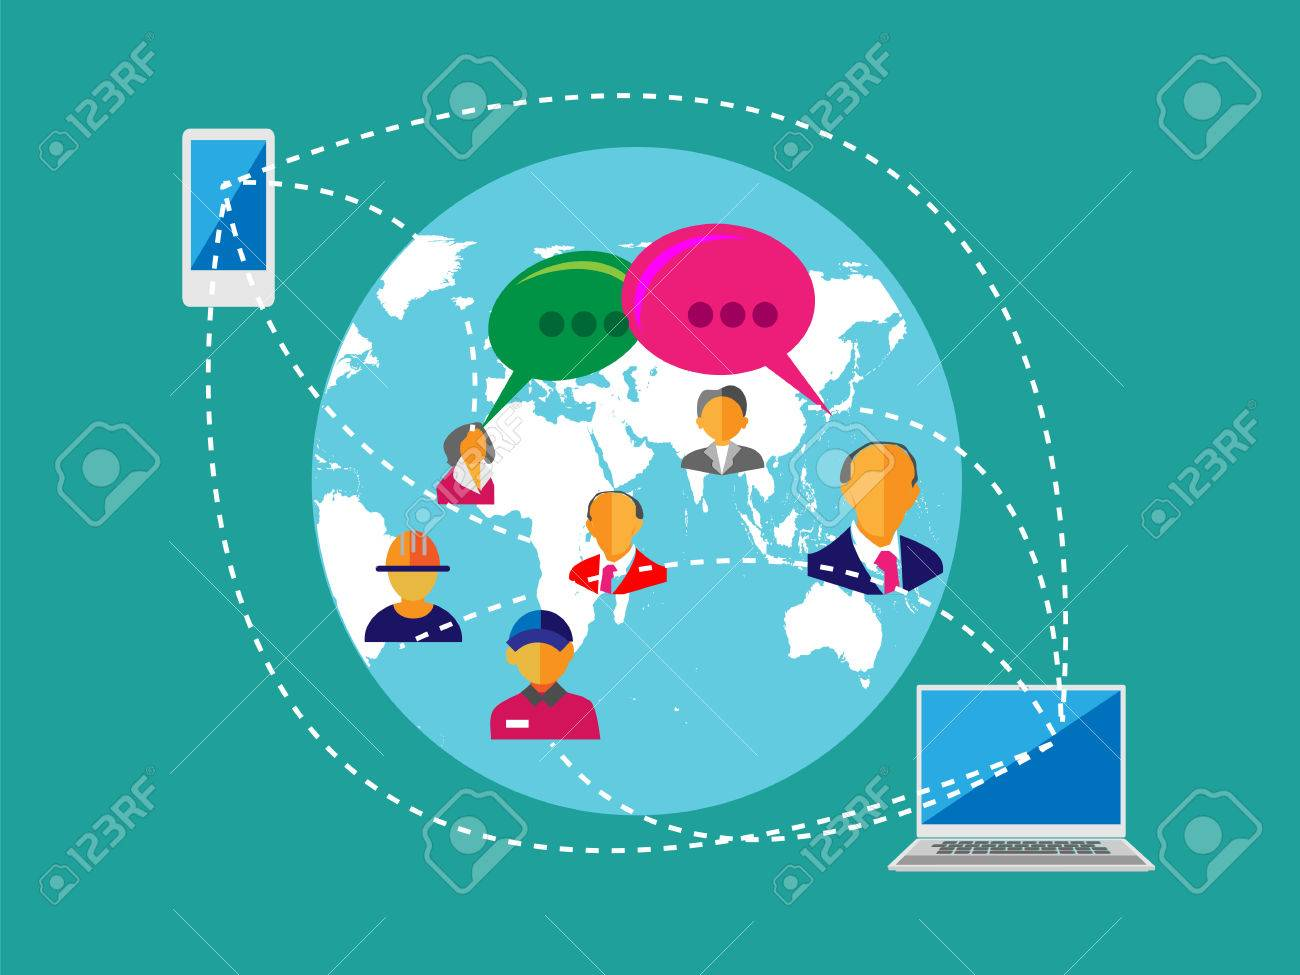 Concept of Social network, People connecting across the world